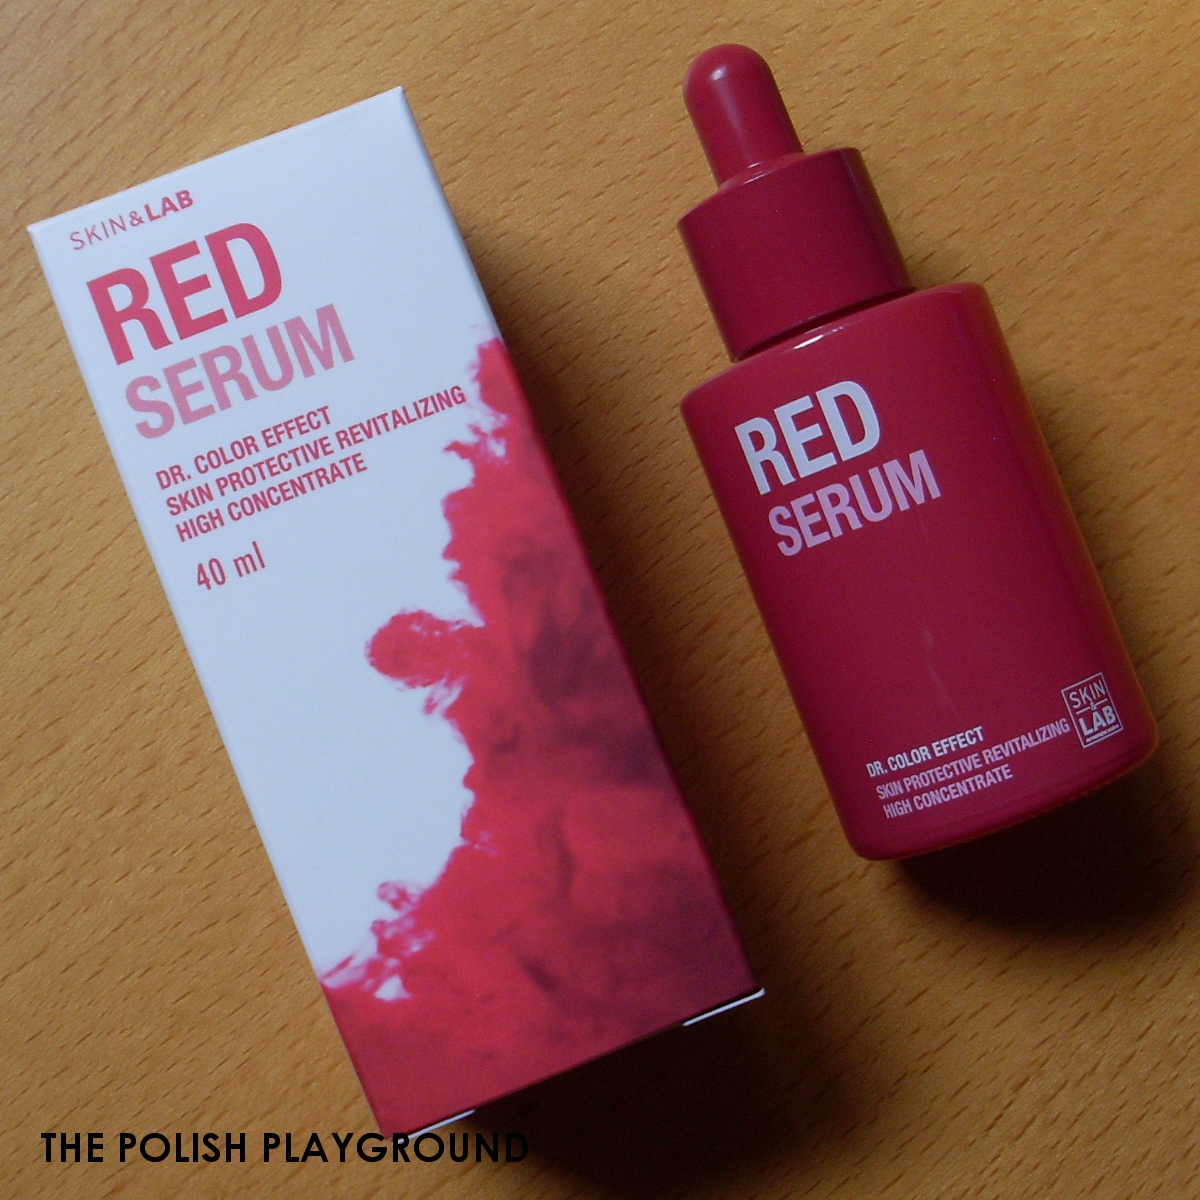 SKIN&LAB Dr. Color Effect Red Serum Review - Wishtrend